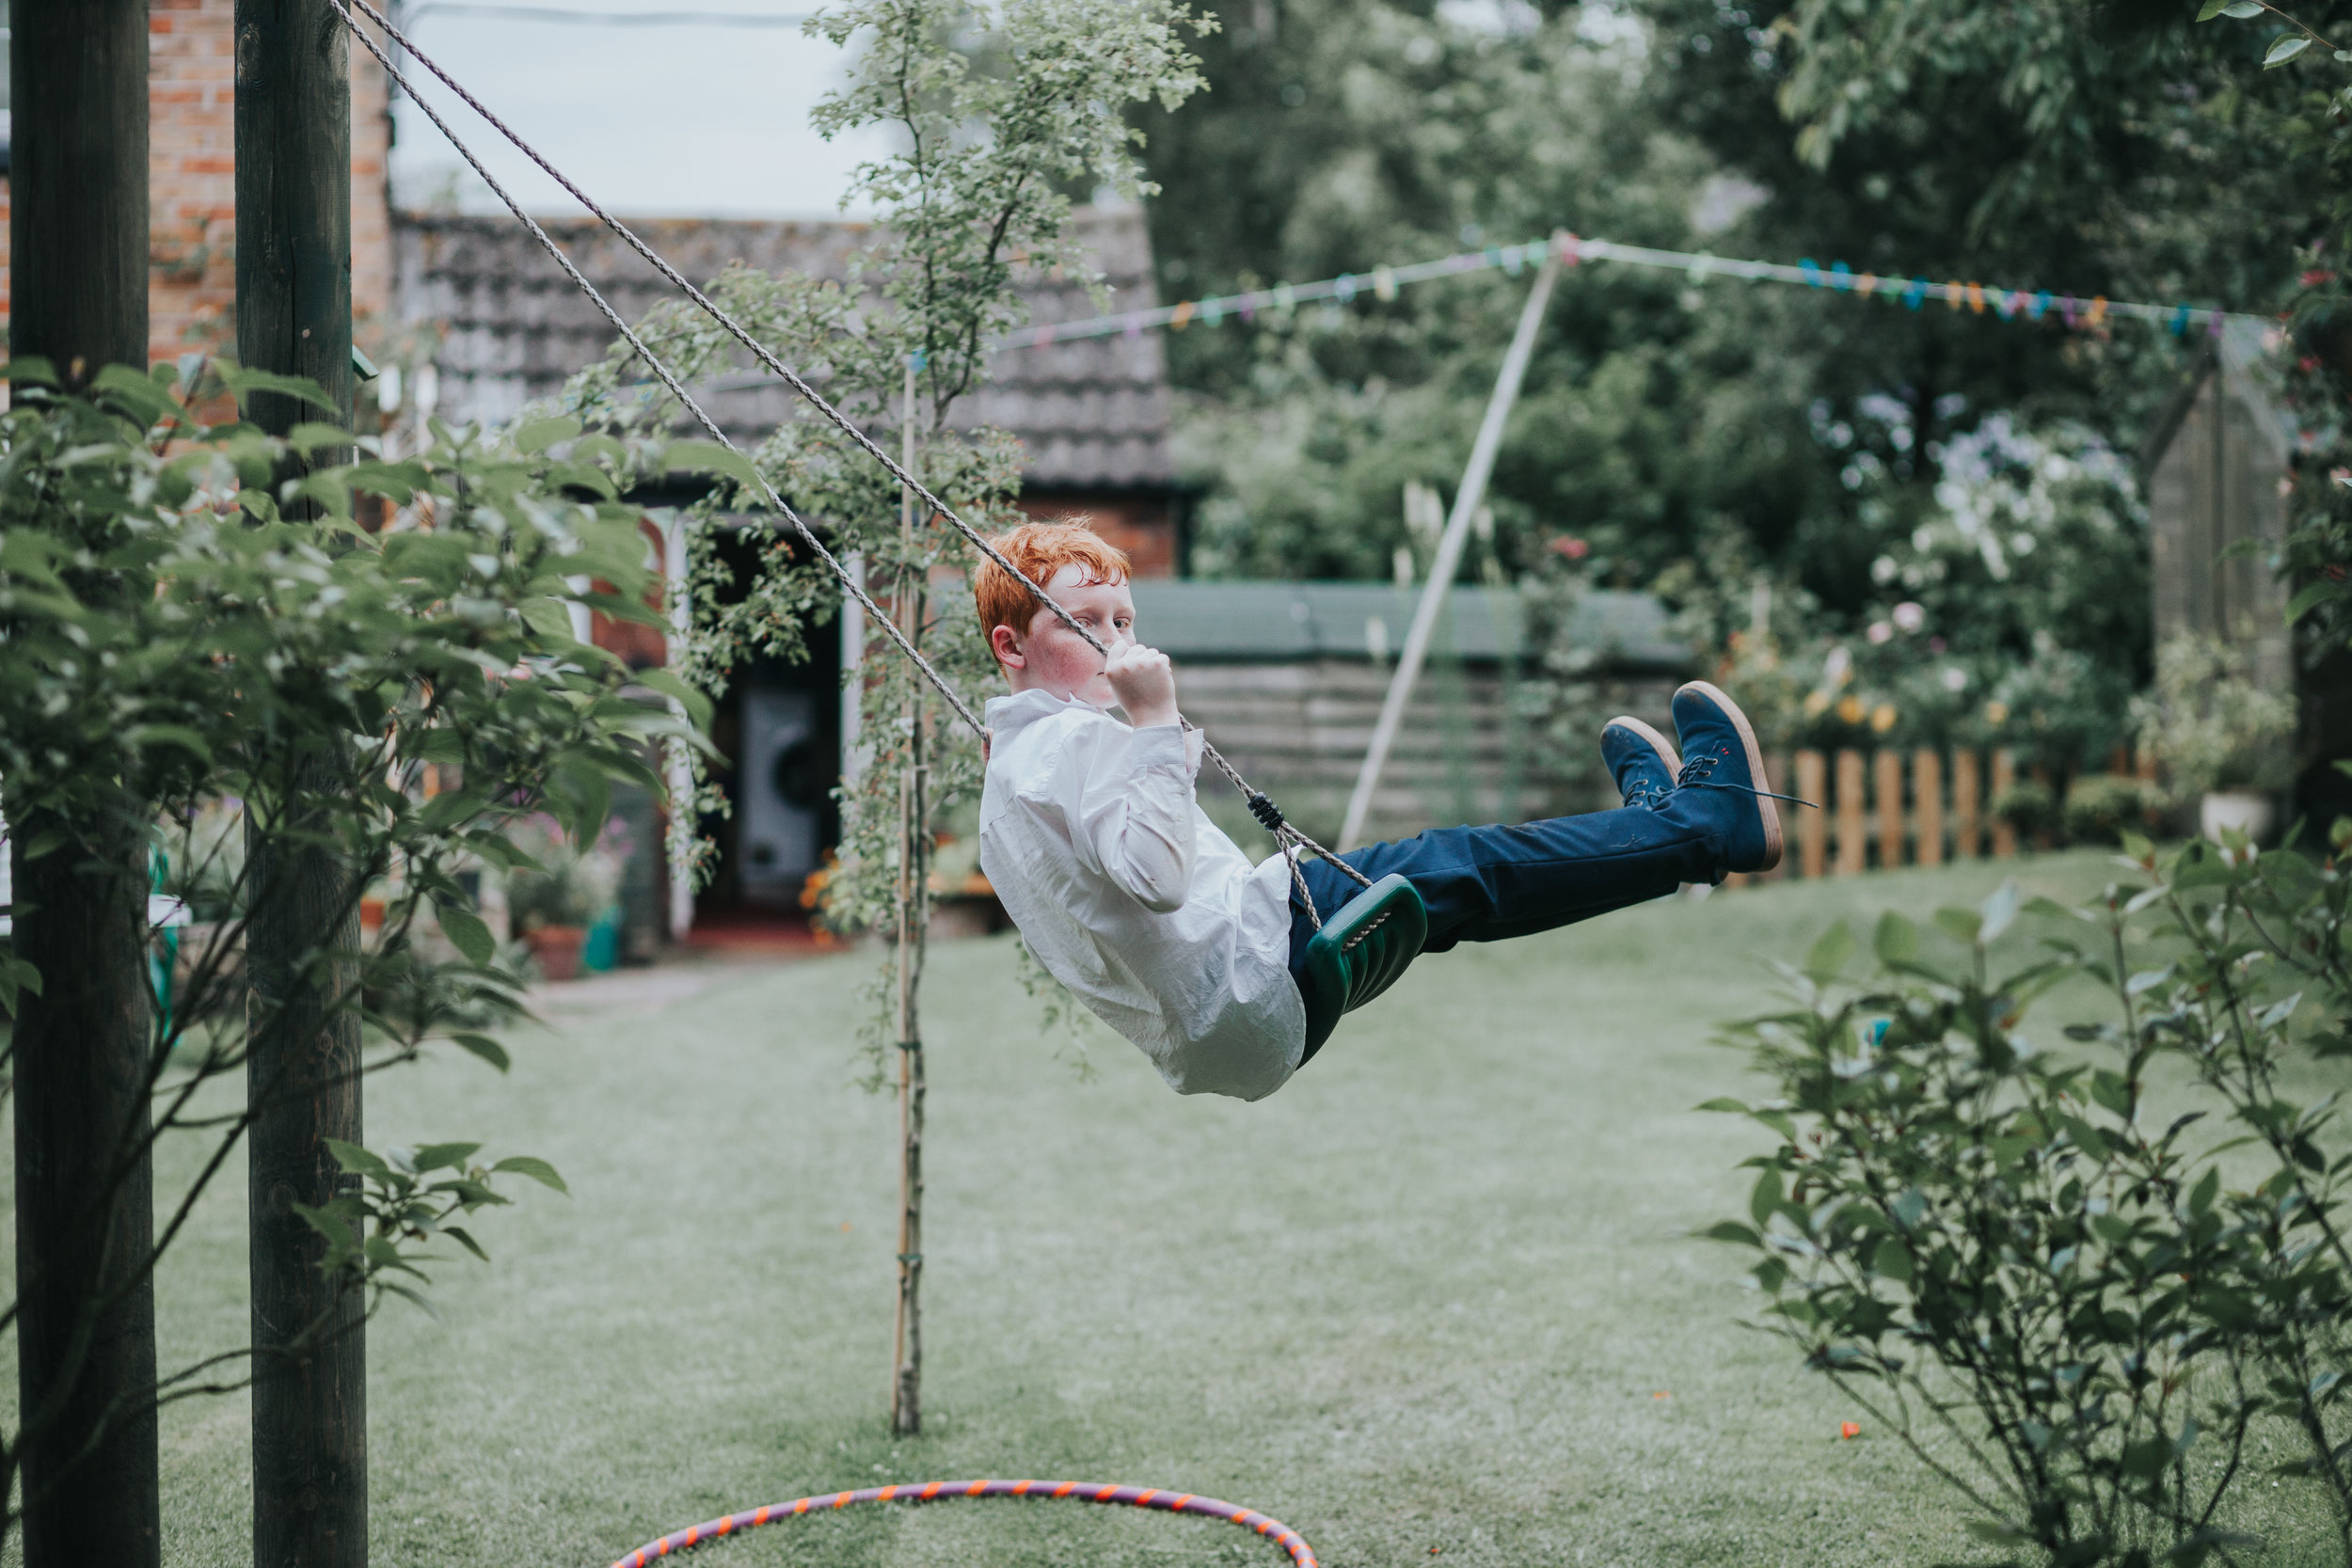 Red haired child catches photographer taking a photo of him at garden party wedding in Manchester.